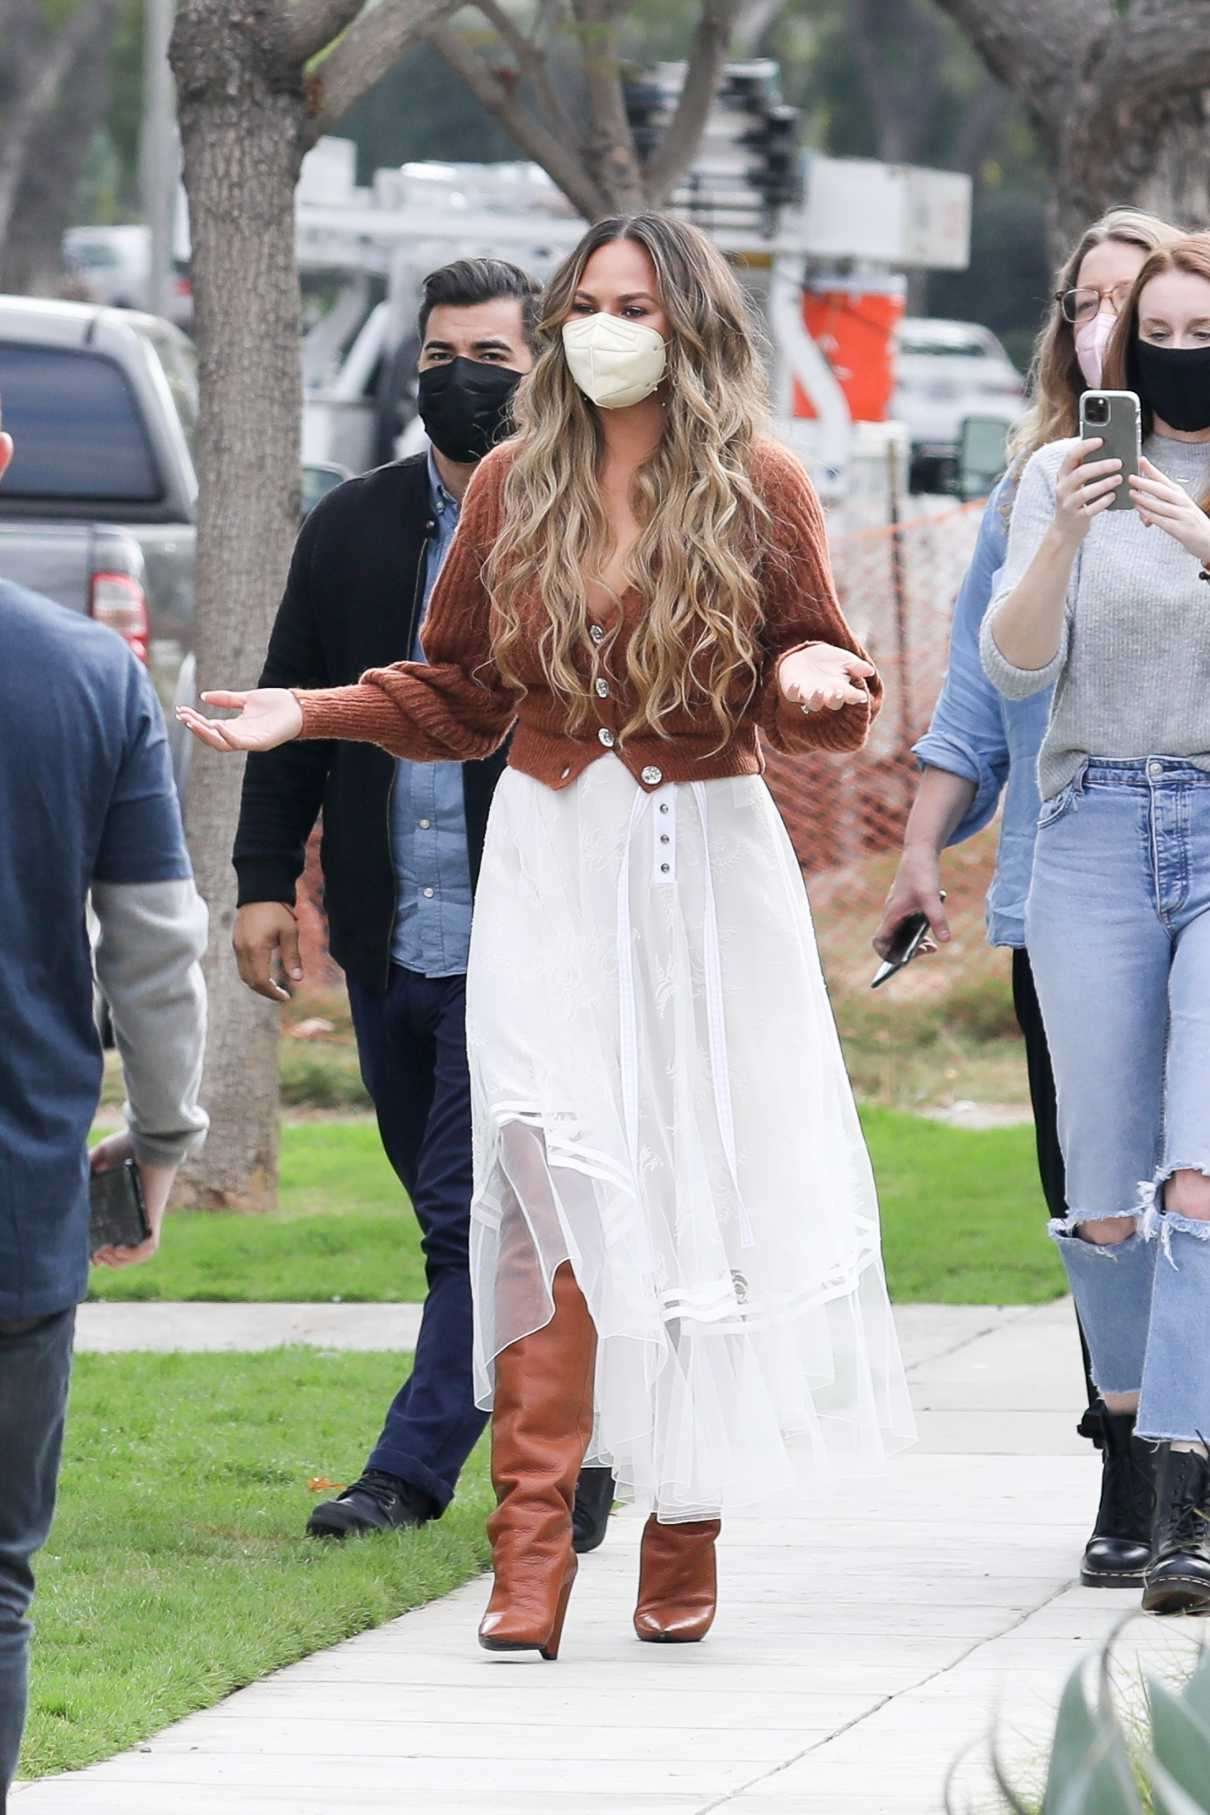 Chrissy Teigen in a Protective Mask